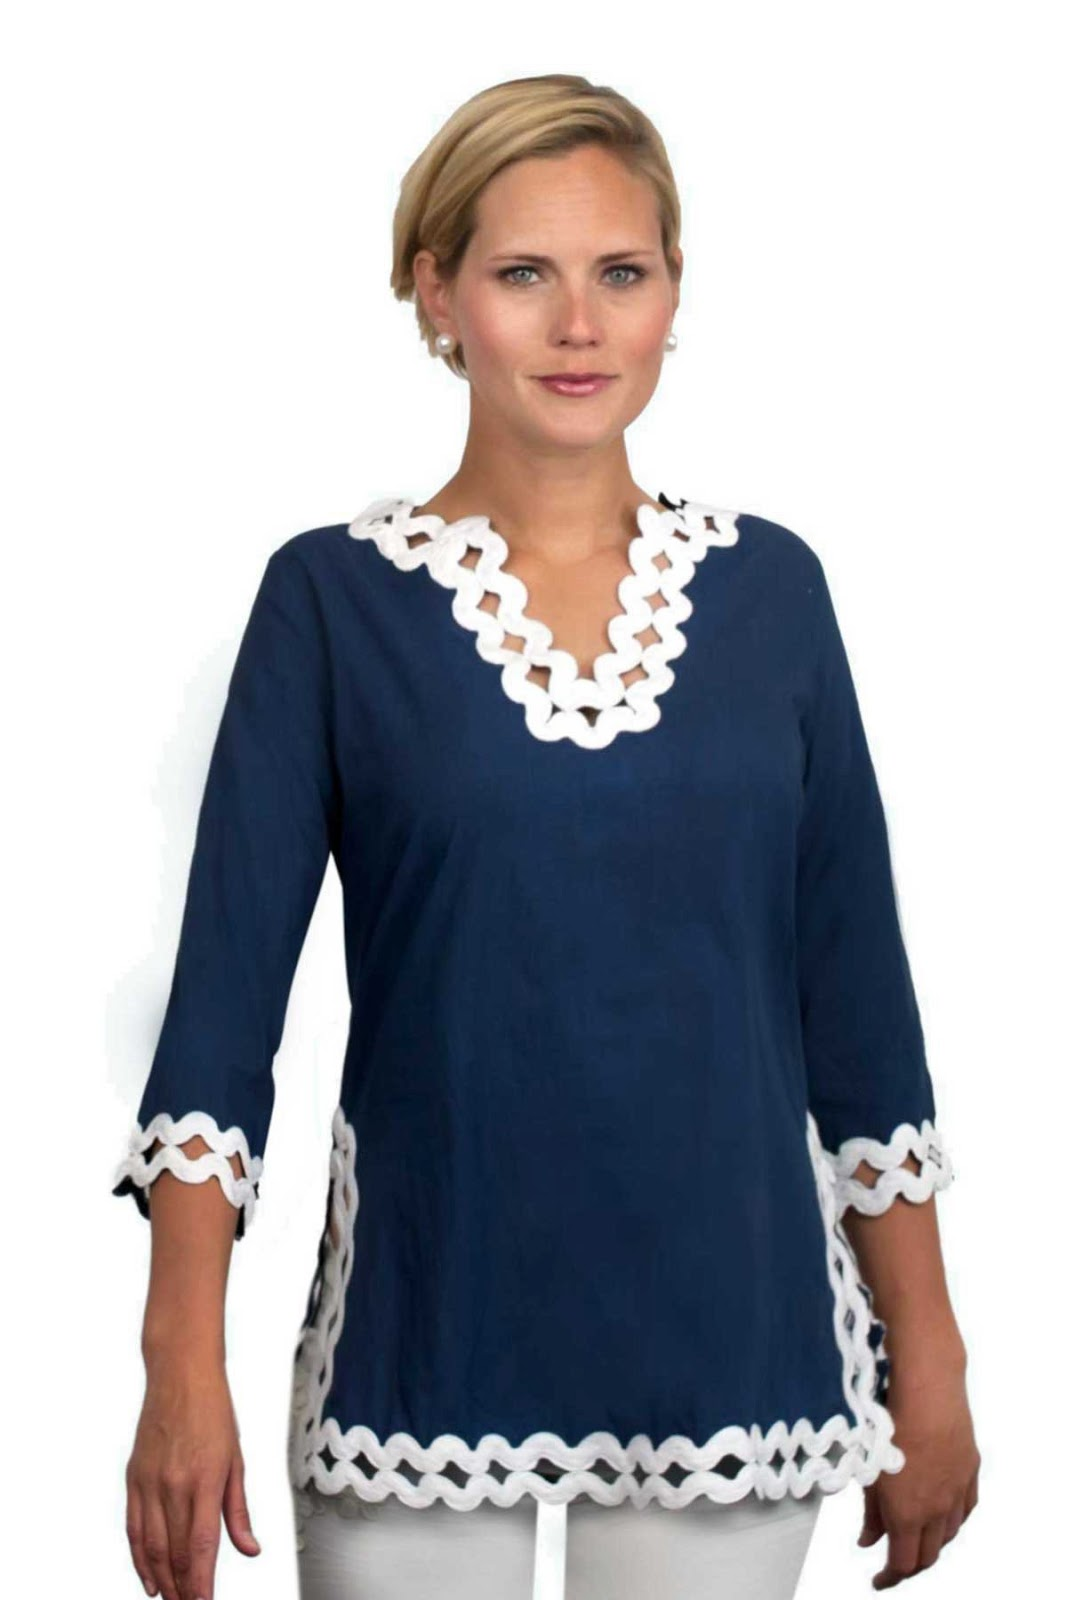 Shop zulily and save up to 70% on stylish plus size tunics for women. Browse a variety of styles including sidetail, off-shoulder and handkerchief tunics.